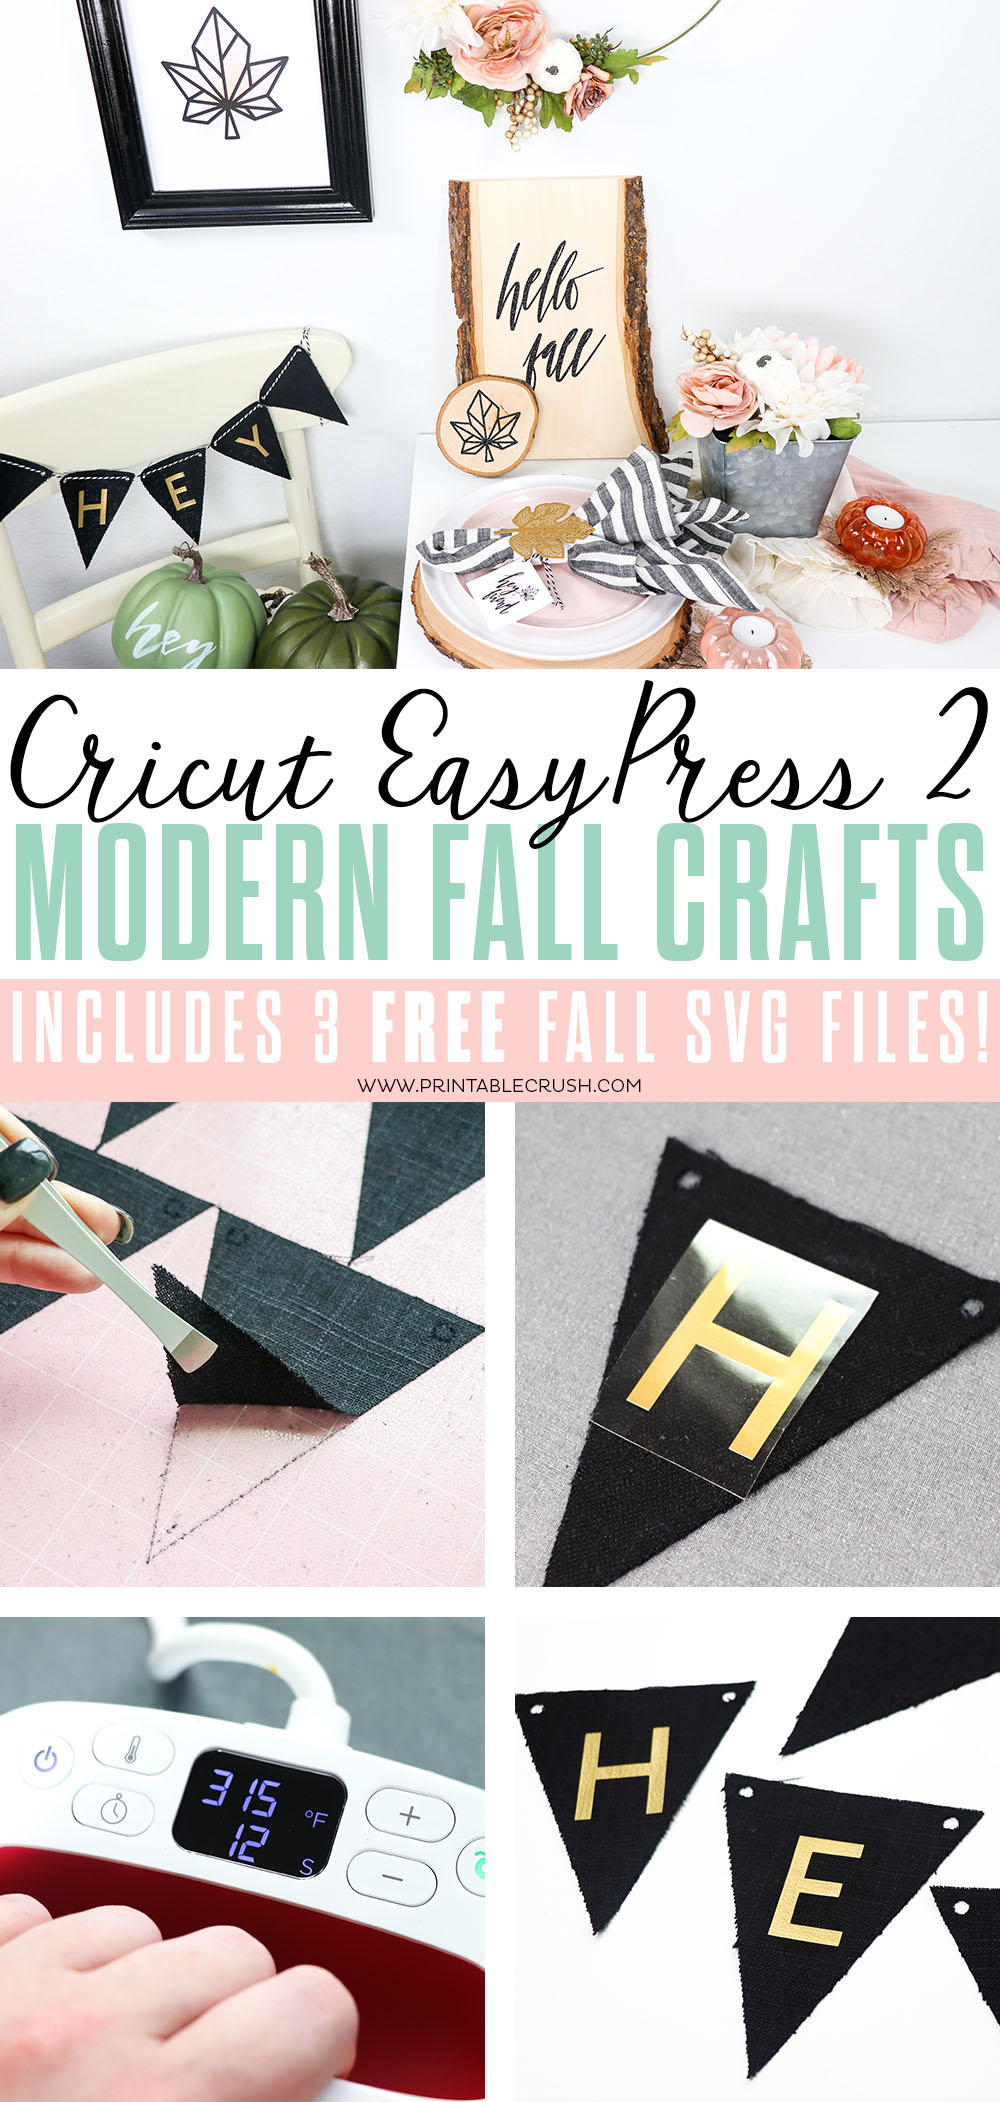 These Cricut EasyPress 2 Modern Fall Crafts and FREE SVG Files are perfect for Thanksgiving or Fall home decor and parties!